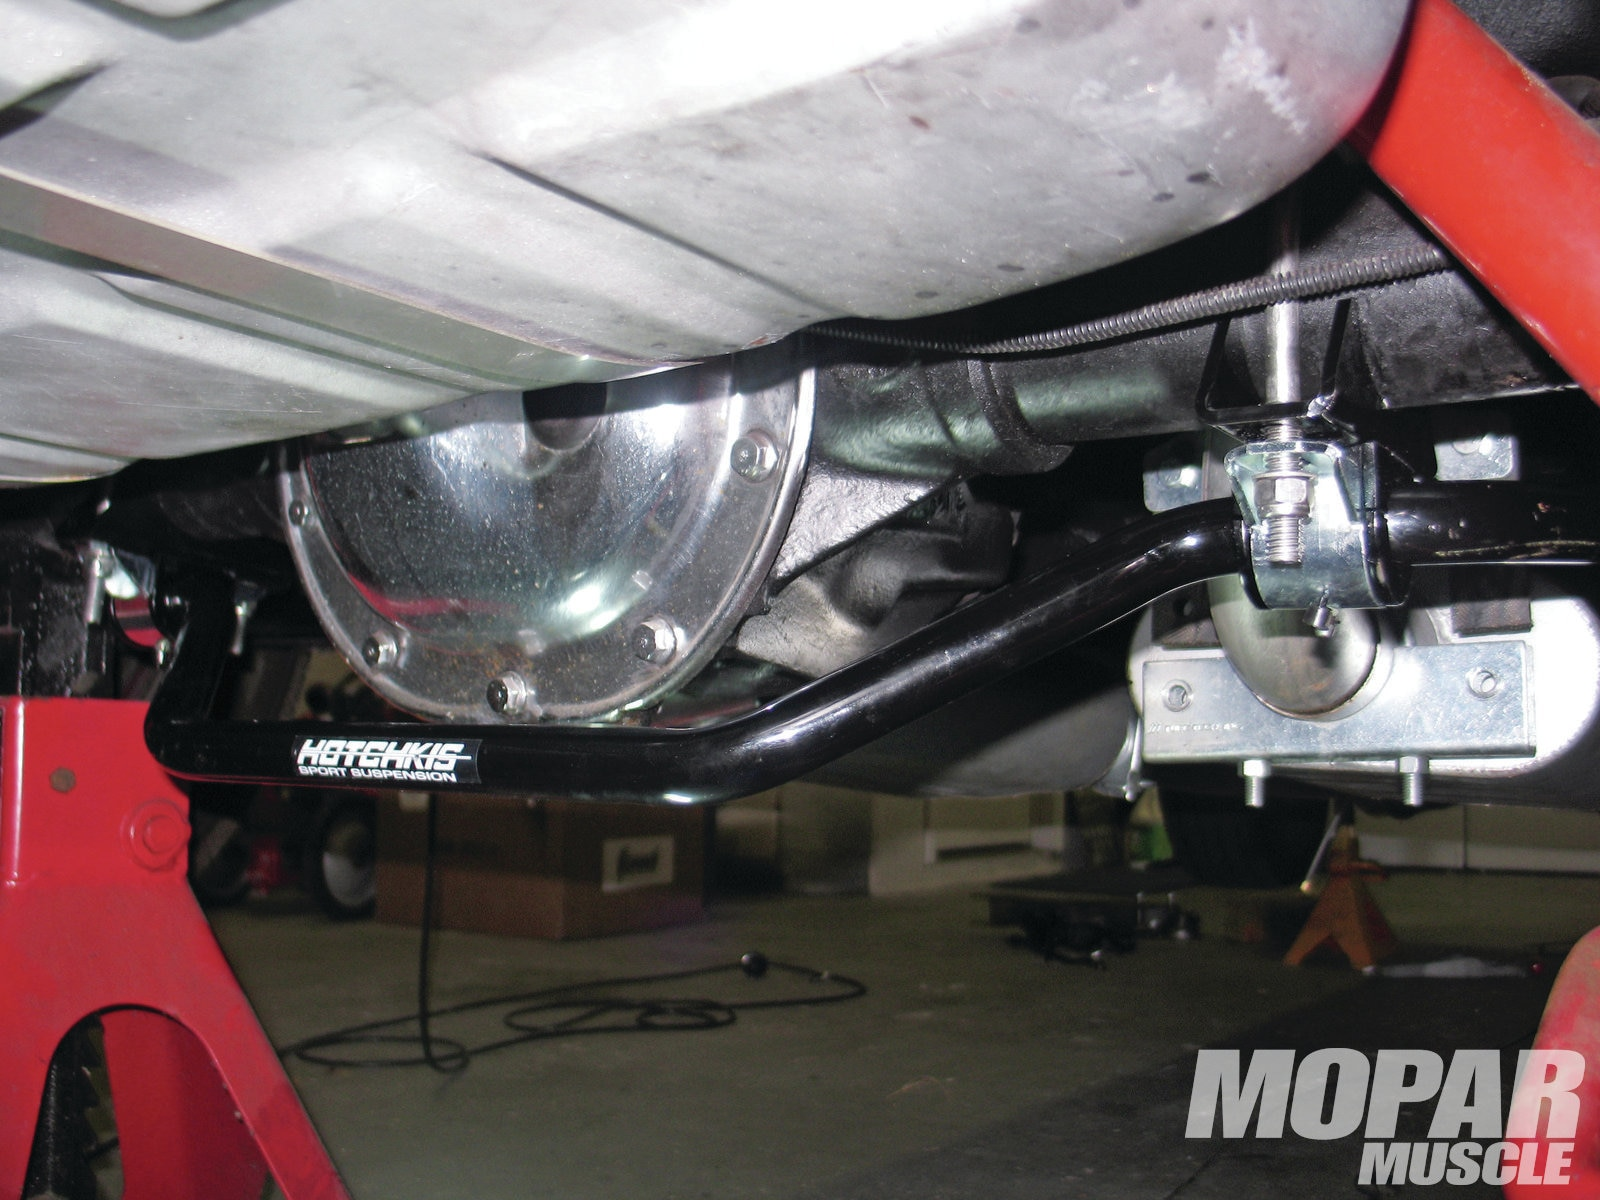 Suspension Bar Hotchkis Sport Suspension Install - Rebound Rock-solid